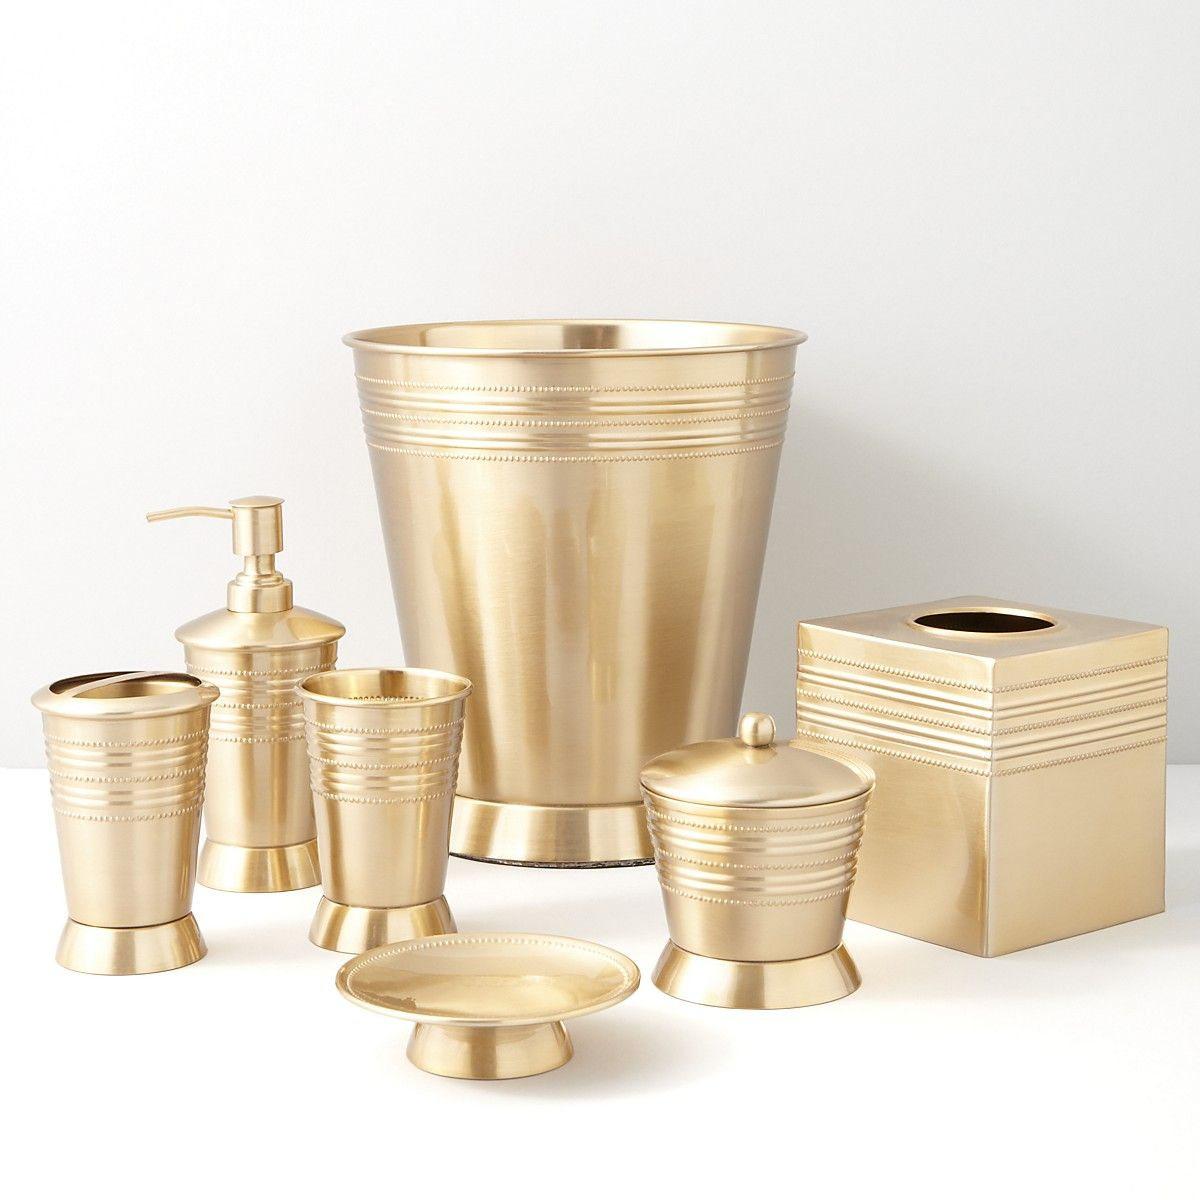 New metallic bead satin brass by paradigm trends bath for Where to get bathroom accessories